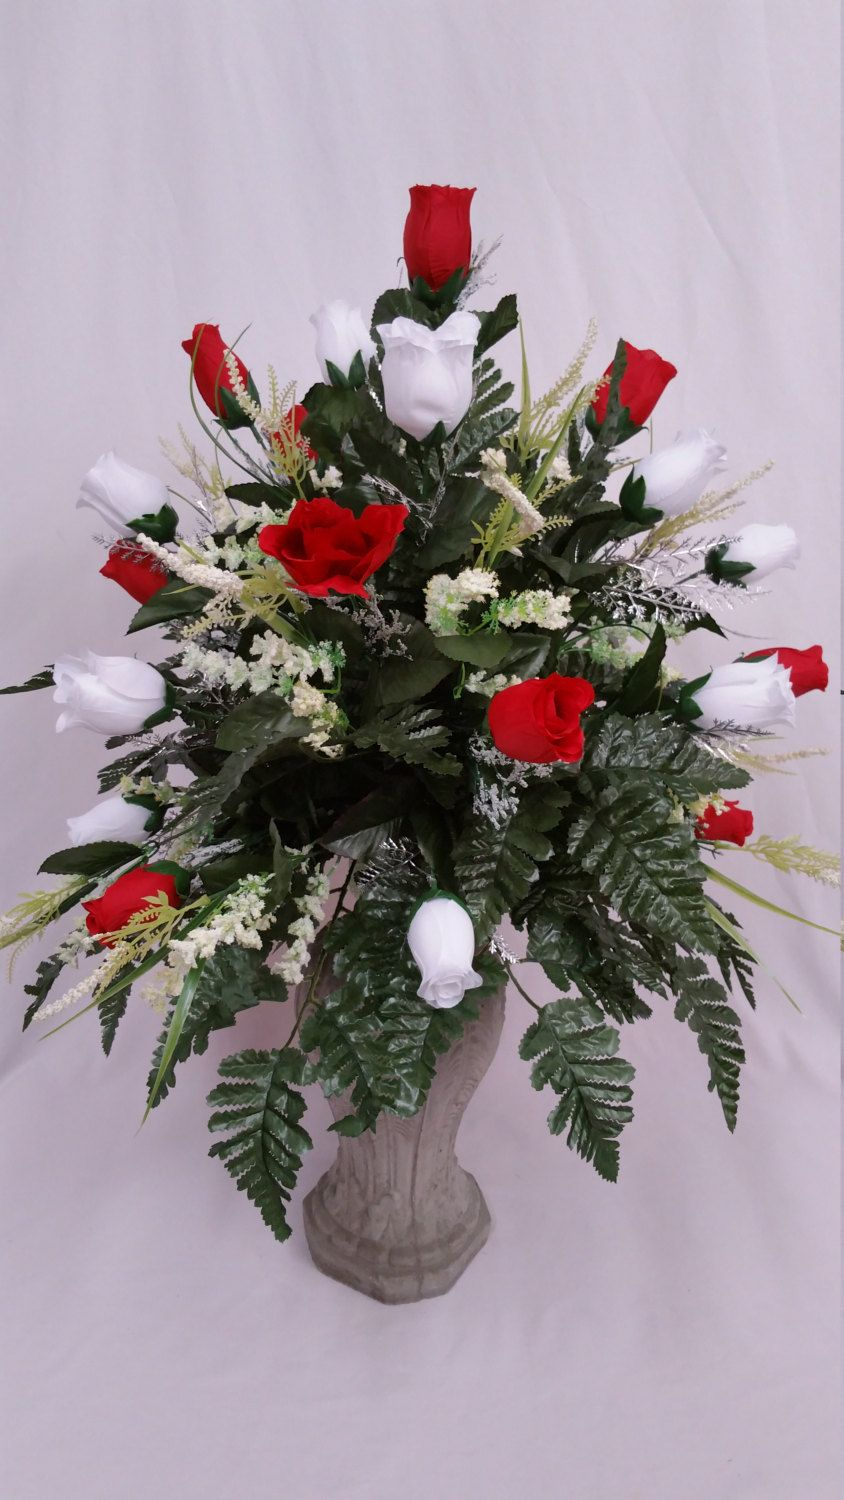 Pin By Syble Wright On Cemetery Vase Pinterest Rose Buds